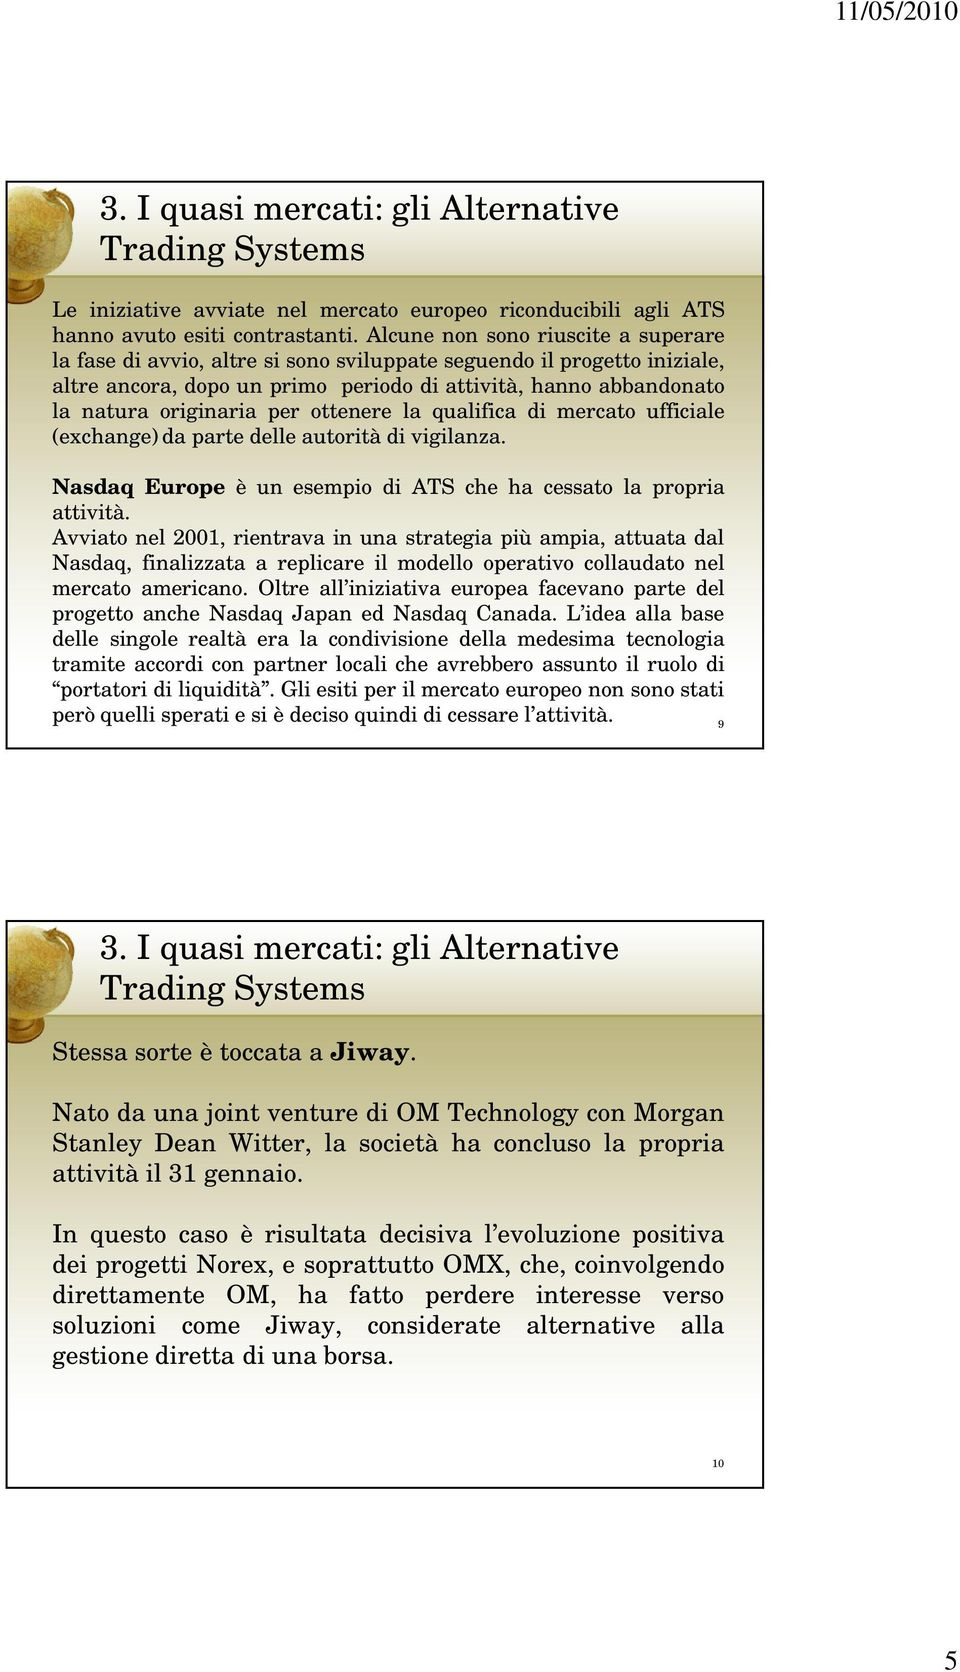 Alternative Trading Systems in European Equities  Celent